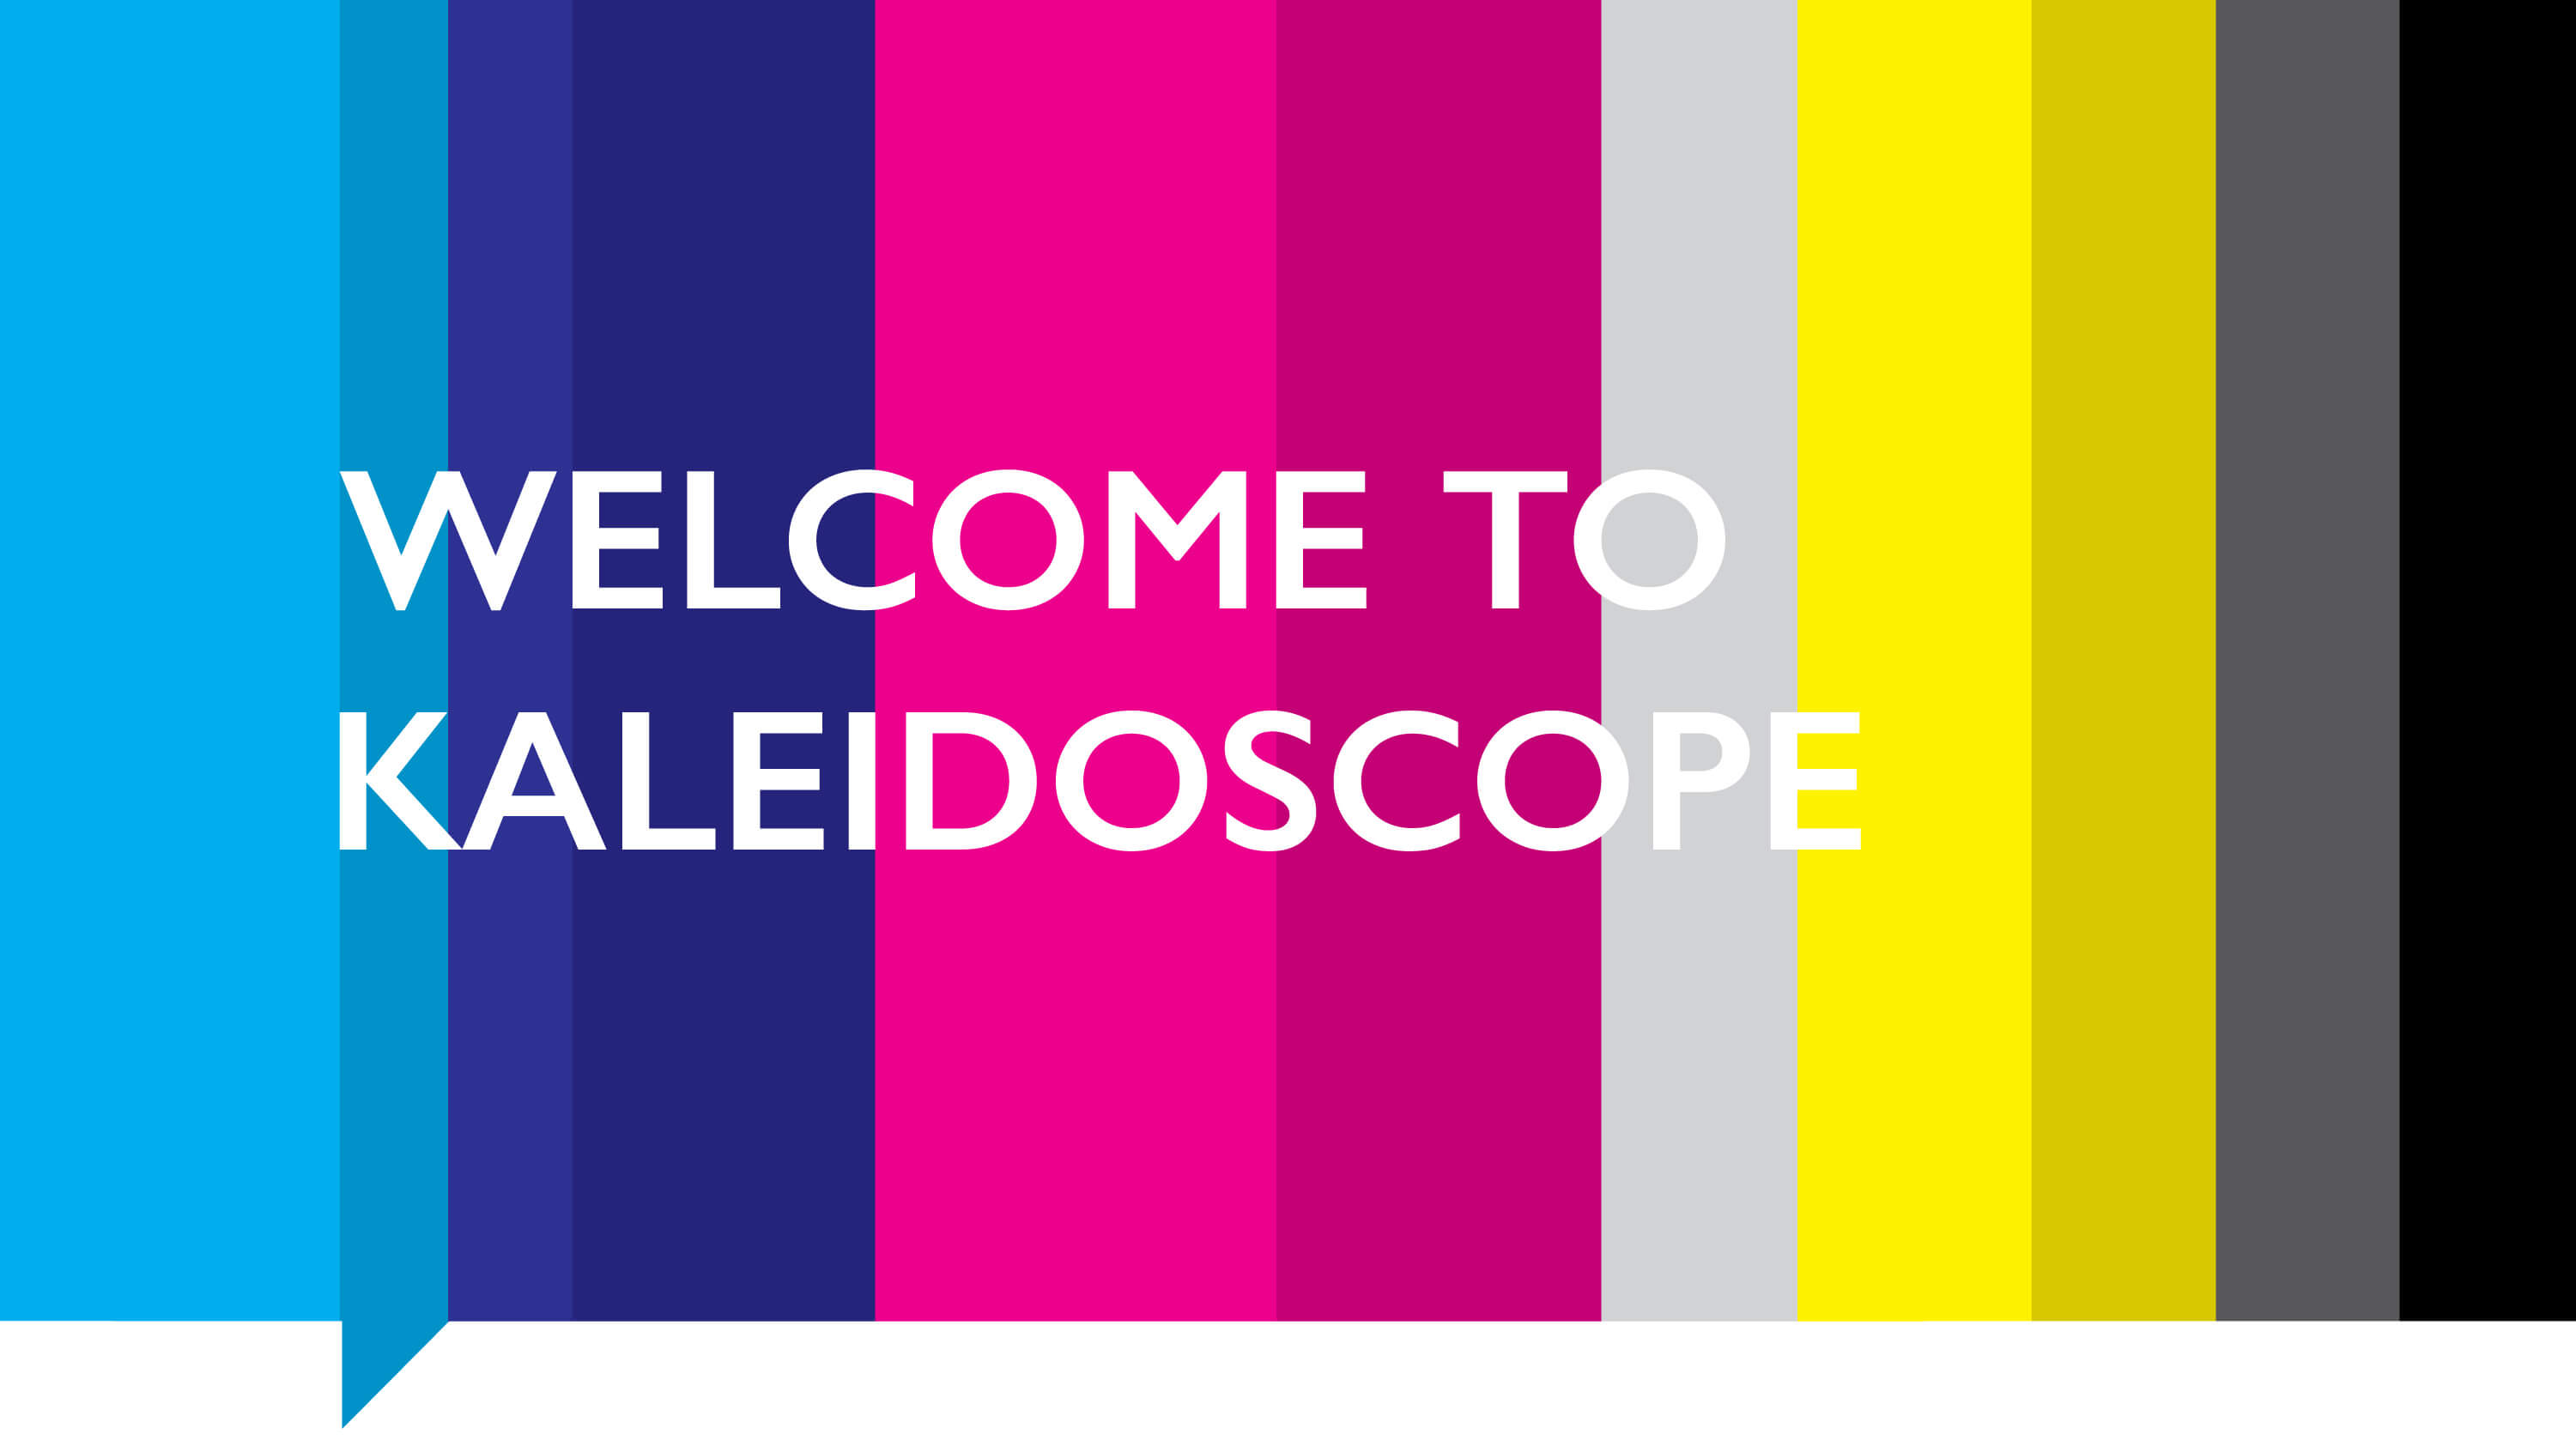 Home - Welcome to Kaleidoscope